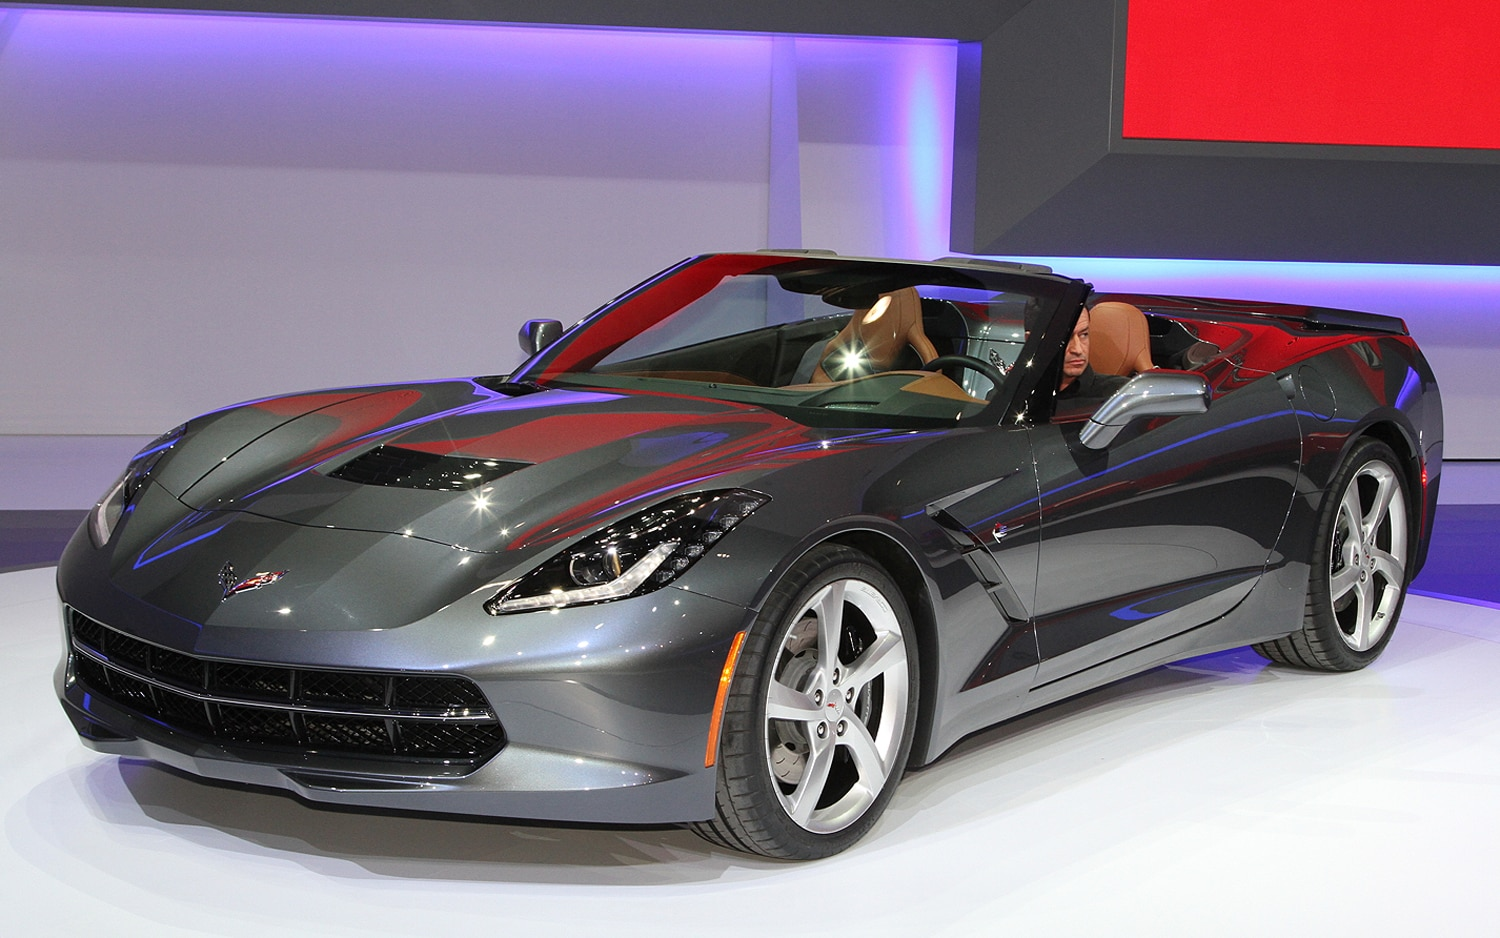 2014 Chevrolet Corvette Stingray Convertible Front View1